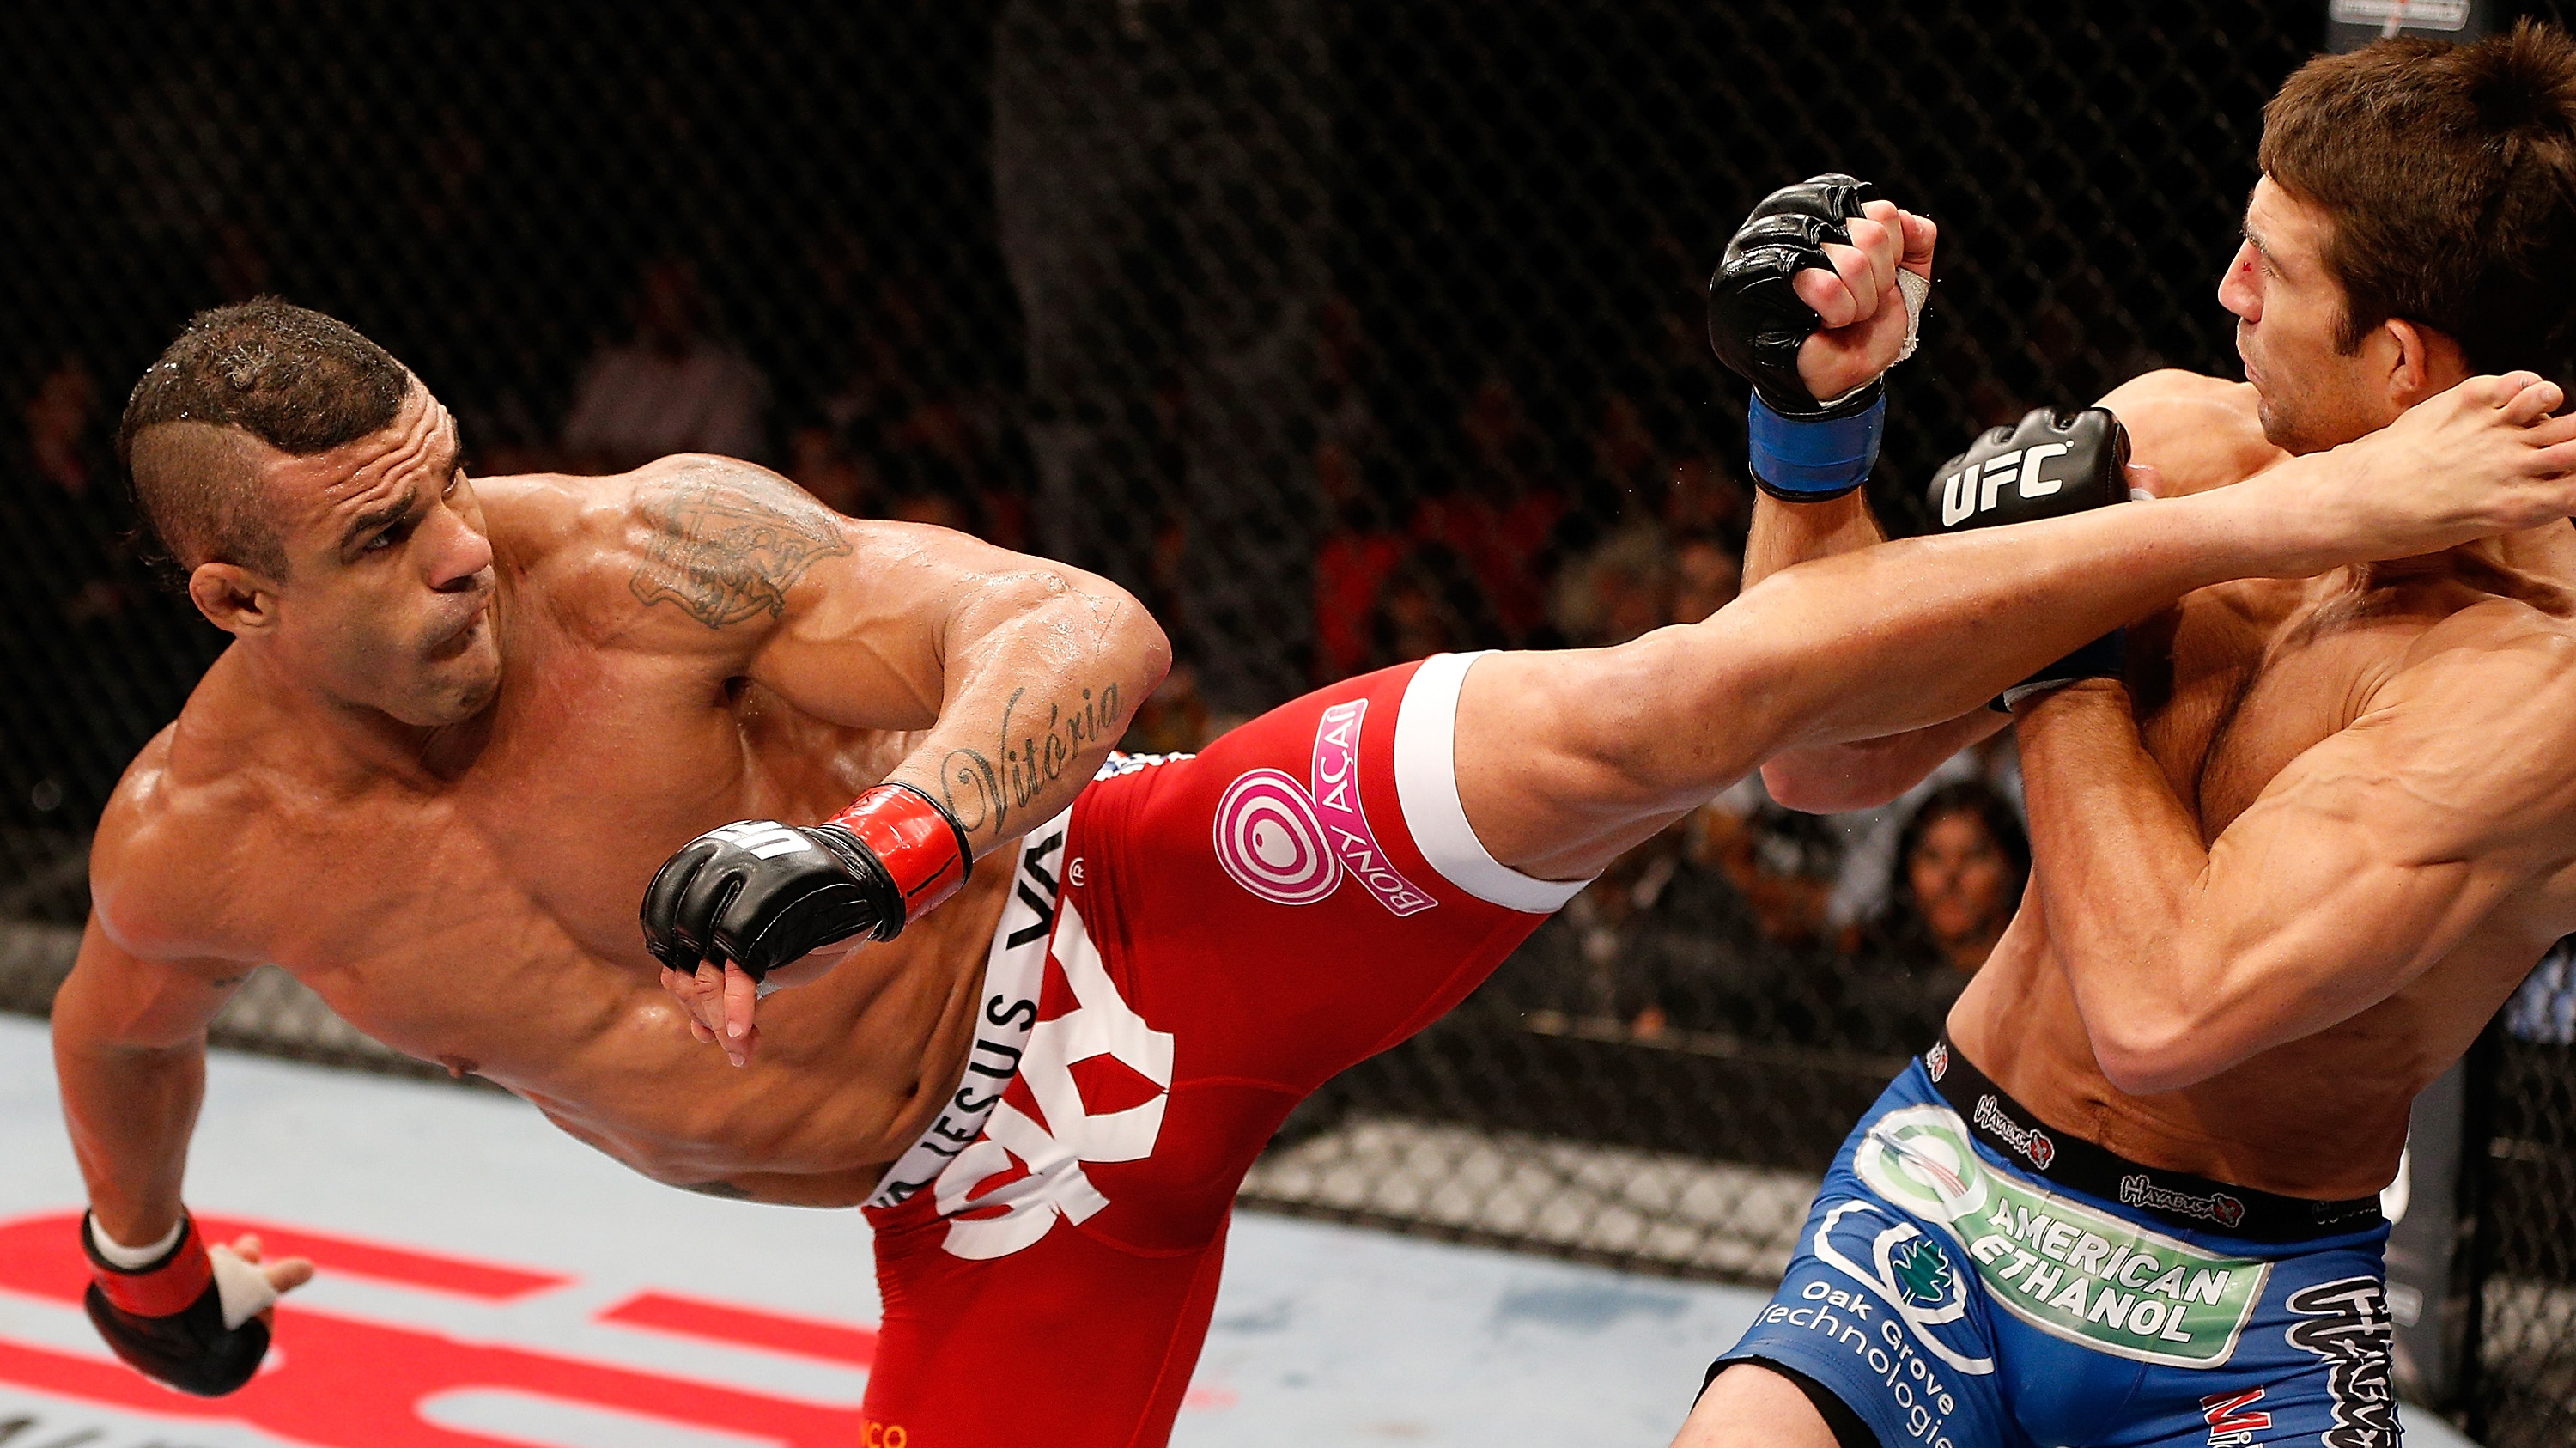 Vitor Belfort (Photo by Josh Hedges/Zuffa LLC/Zuffa LLC via Getty Images)